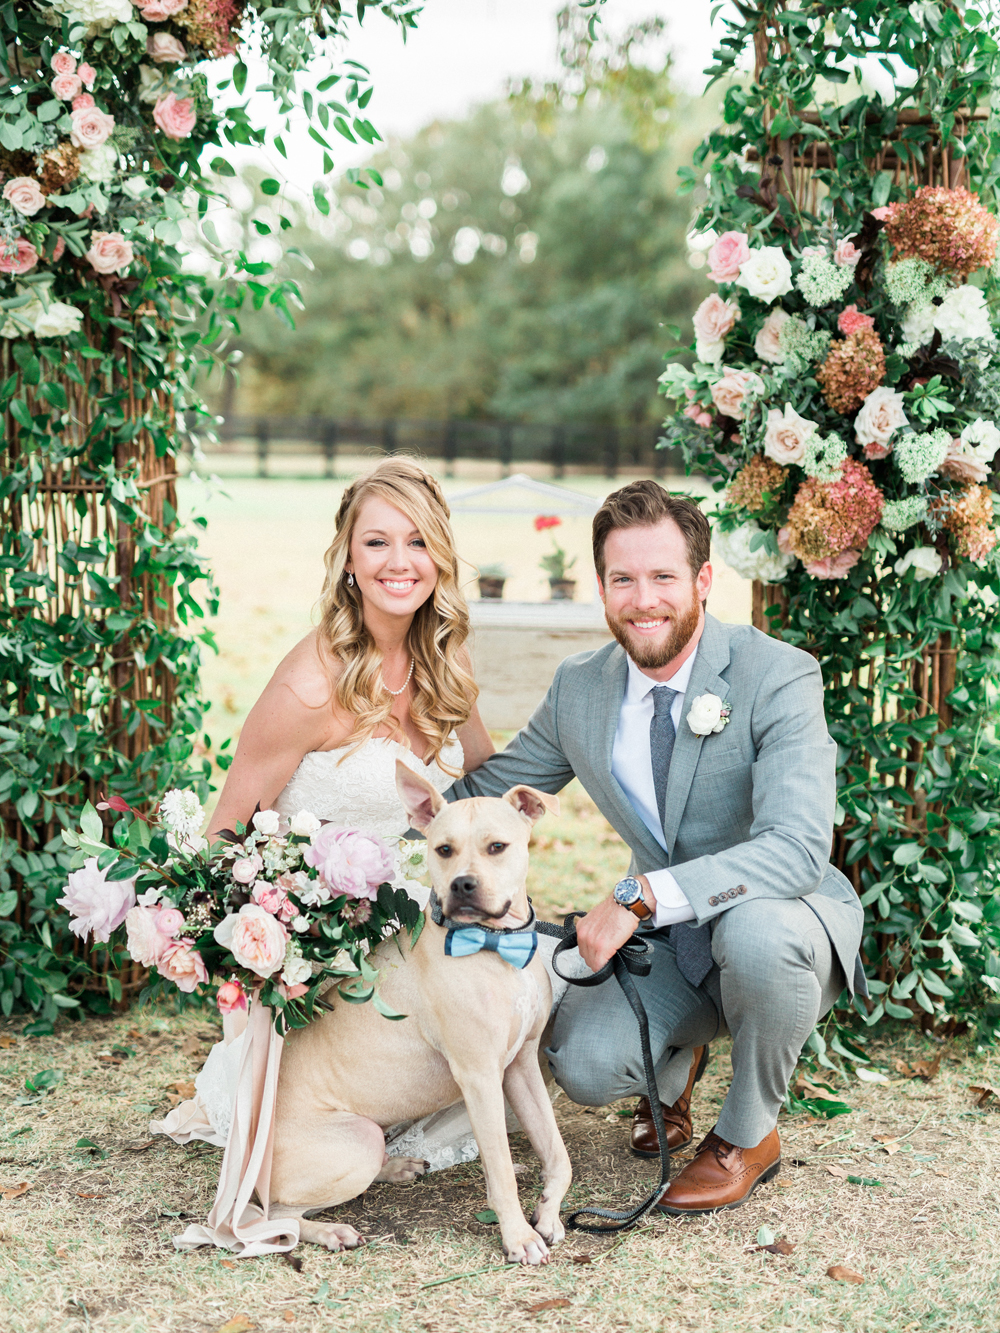 pets at weddings - photo by Elisabeth Carol Photography http://ruffledblog.com/picturesque-garden-wedding-at-white-sparrow-barn